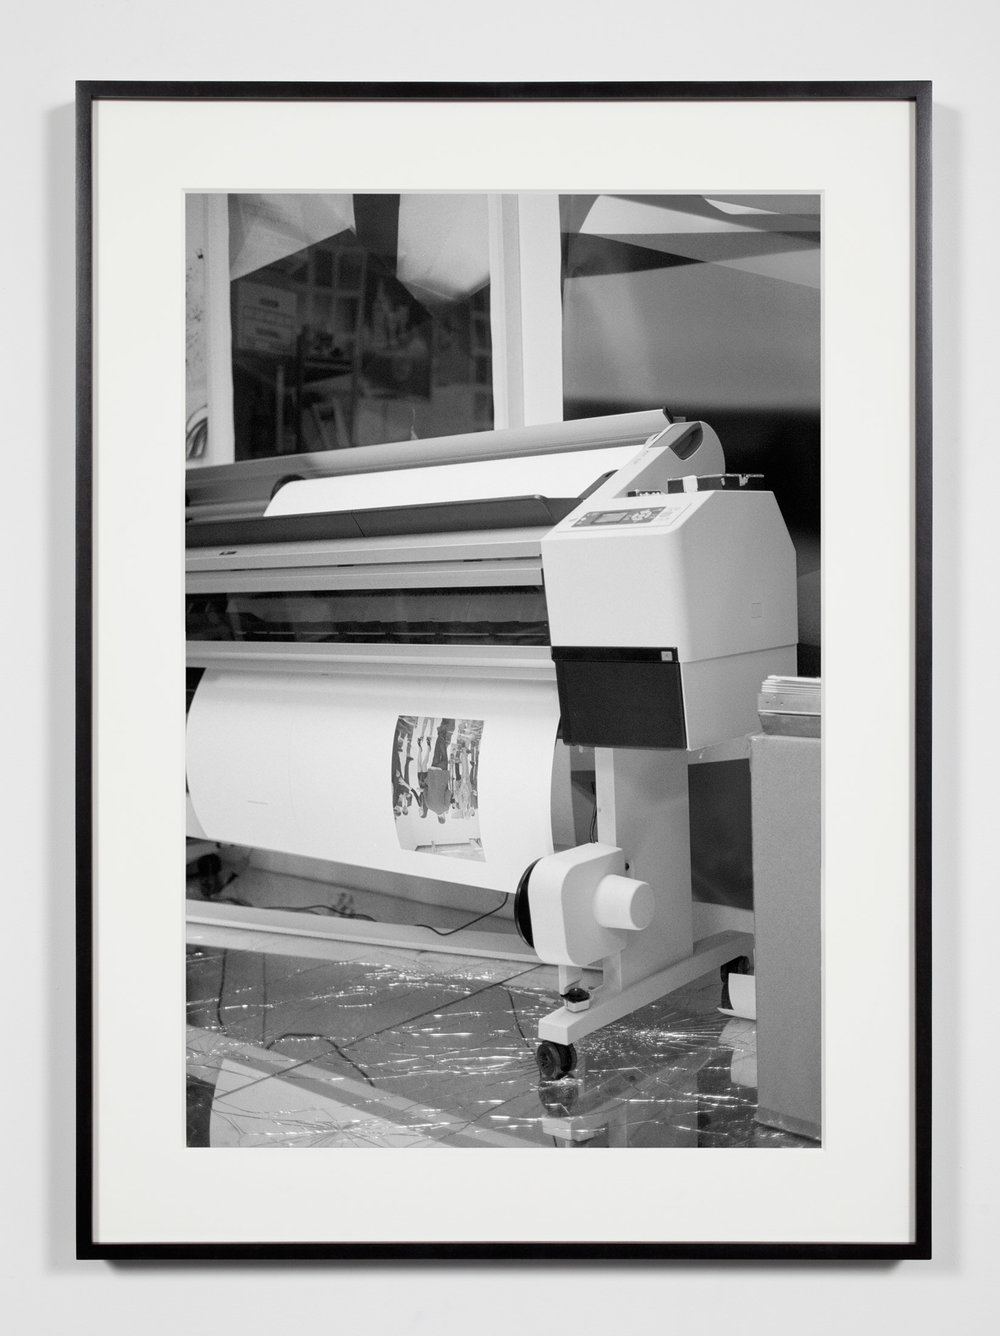 Artist Studio, Wide-Format Inkjet Printer, Los Angeles, California, December 9, 2010   2011  Epson Ultrachrome K3 archival ink jet print on Hahnemühle Photo Rag paper  36 3/8 x 26 3/8 inches   Industrial Portraits, 2008–    A Diagram of Forces, 2011